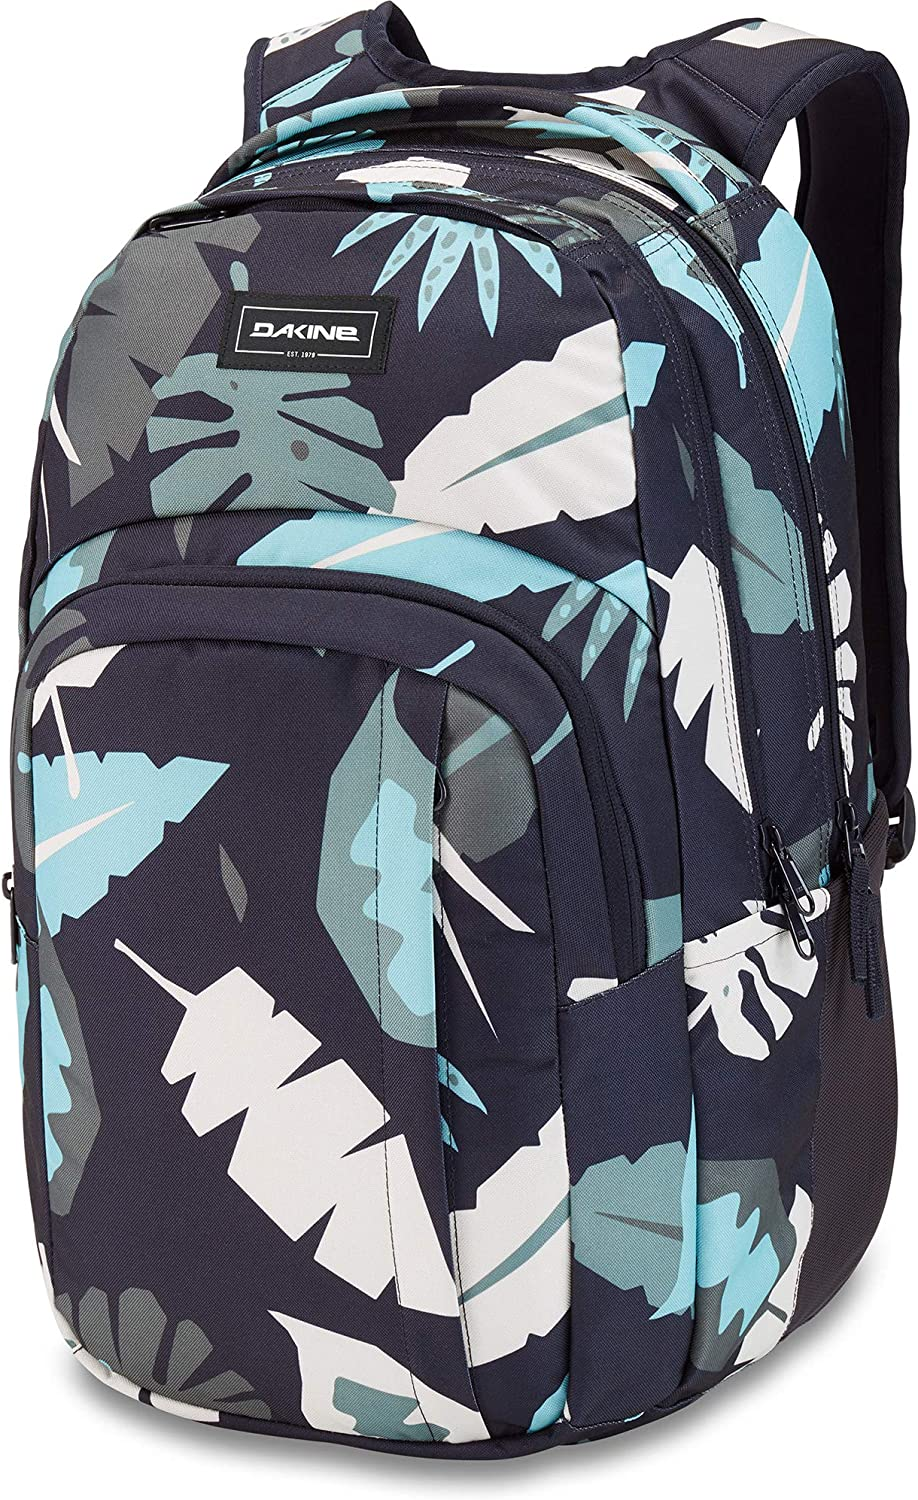 Dakine Campus 33 Liter Backpack for The Urban Commute, Ashcroft Camo, 33 Liter